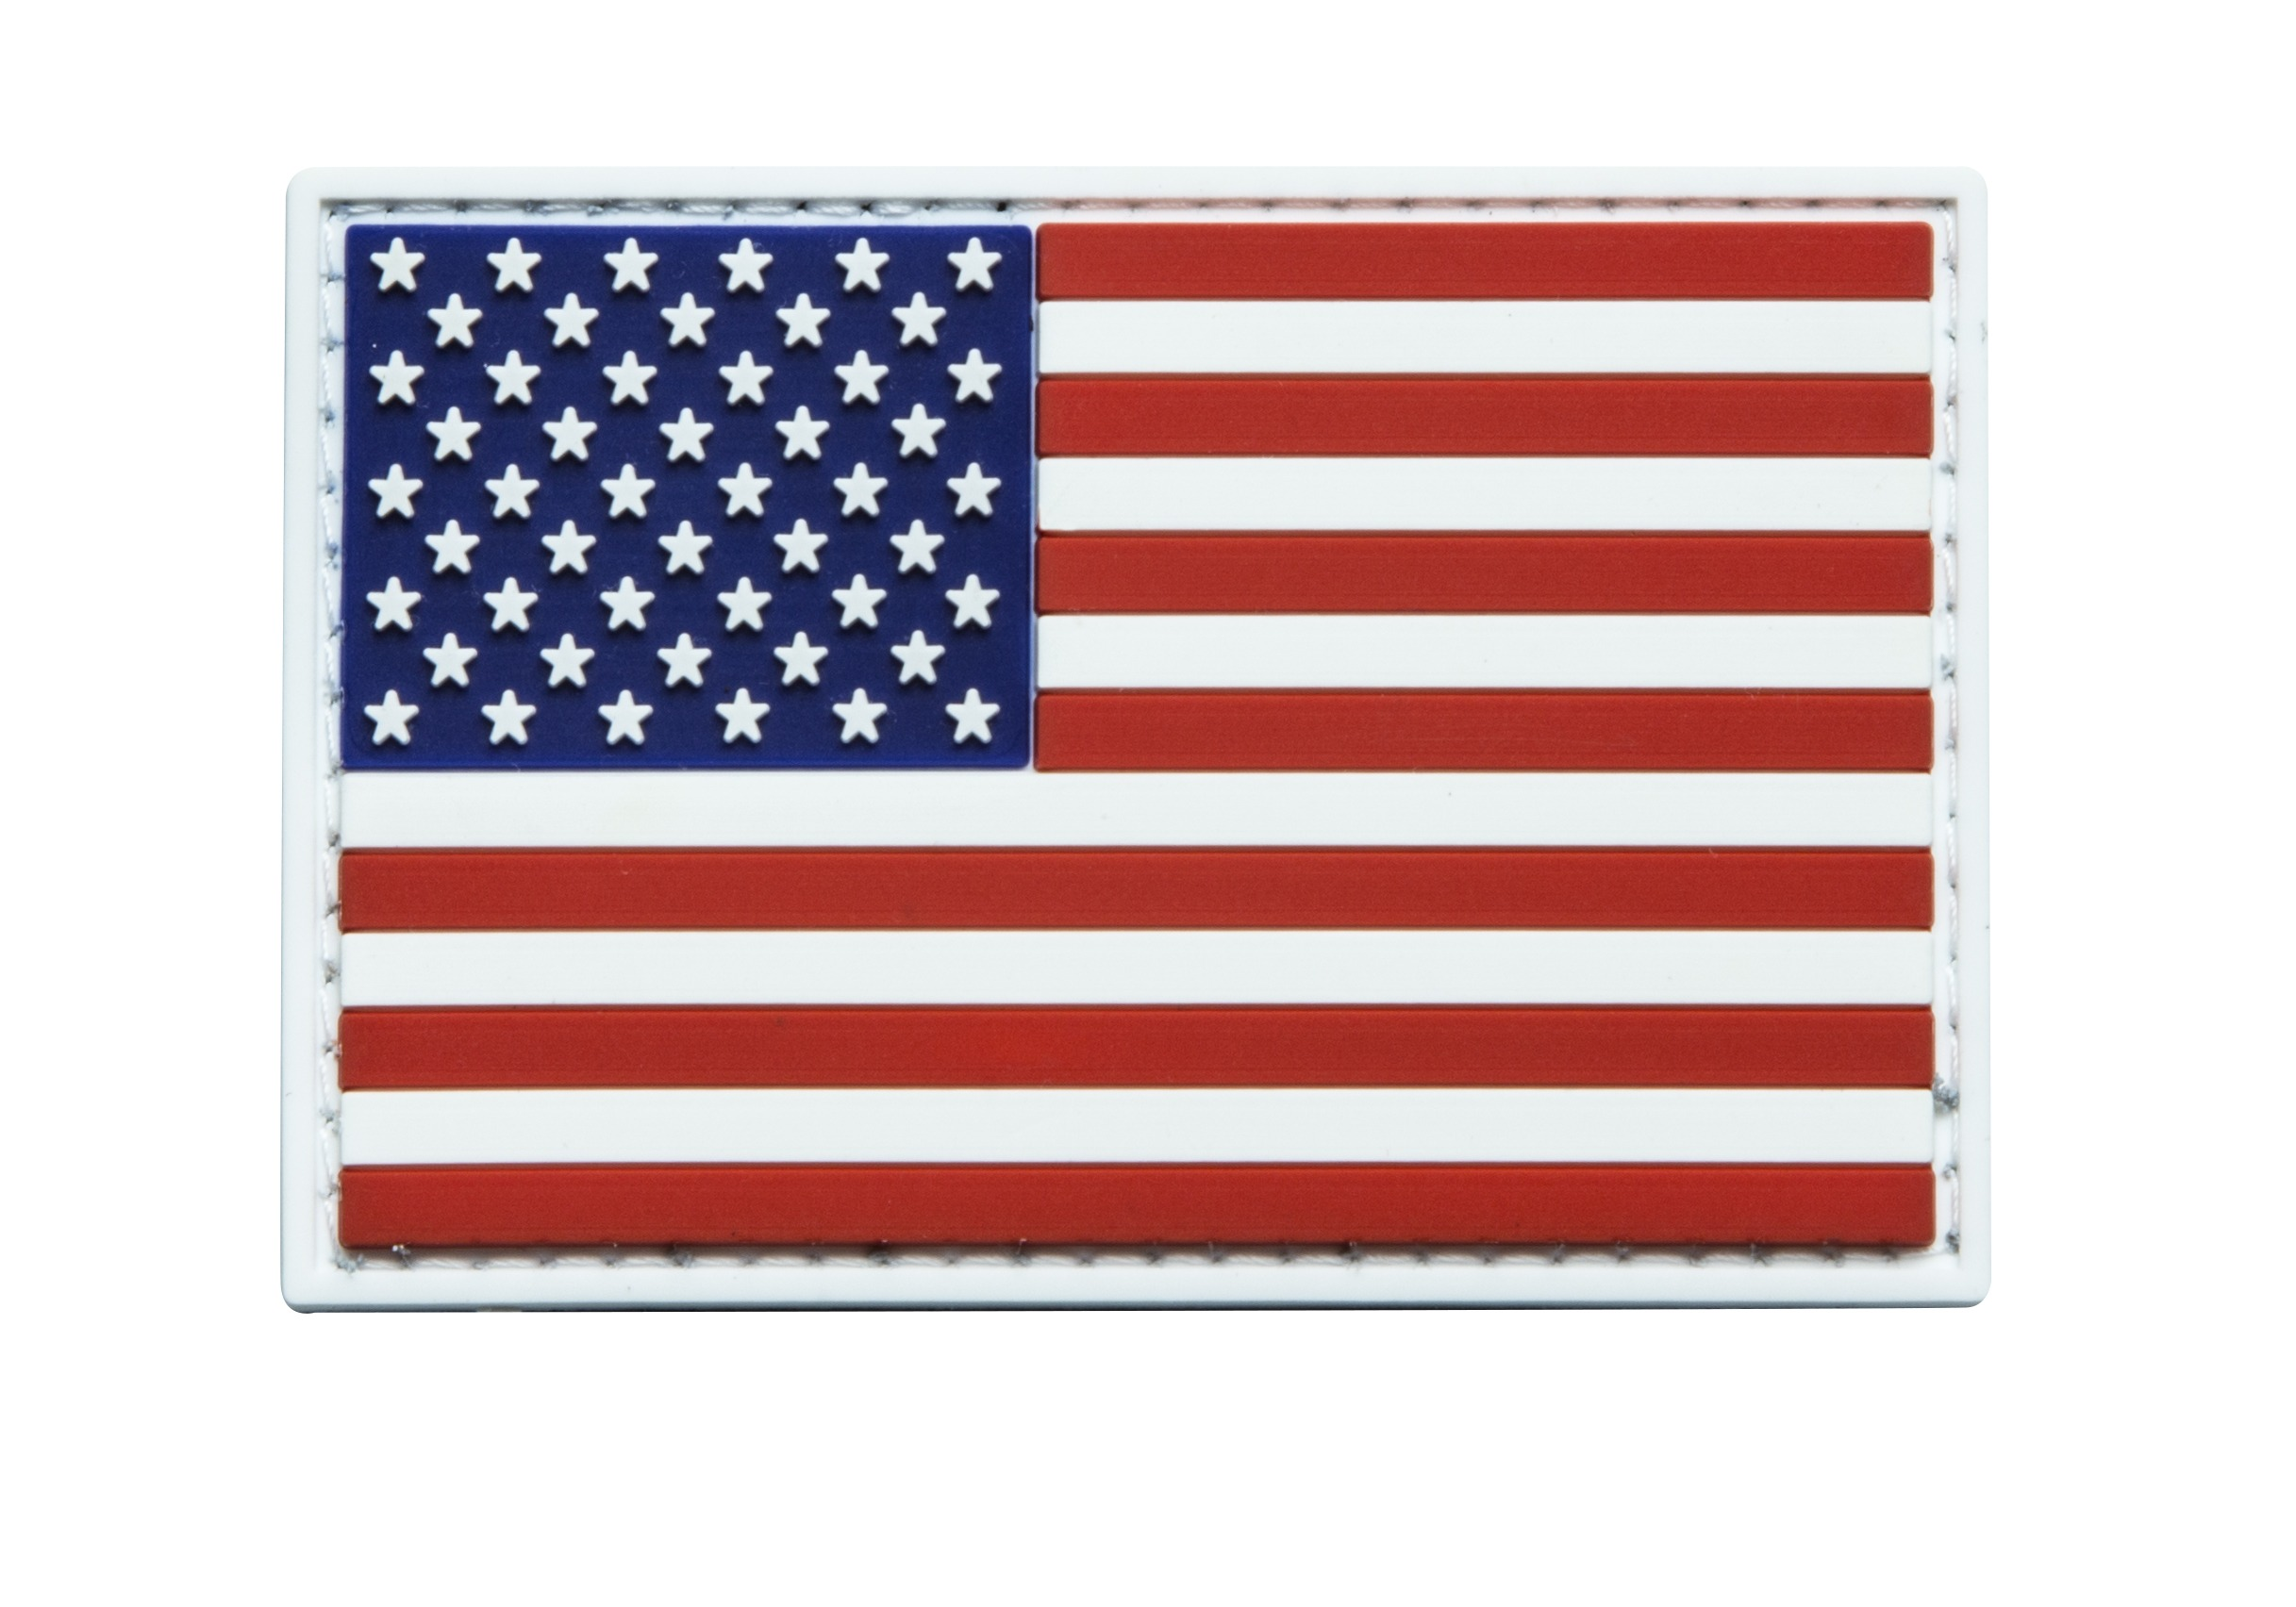 An American flag vinyl patch with Velcro back for your range bag 1ac4d53fe1e